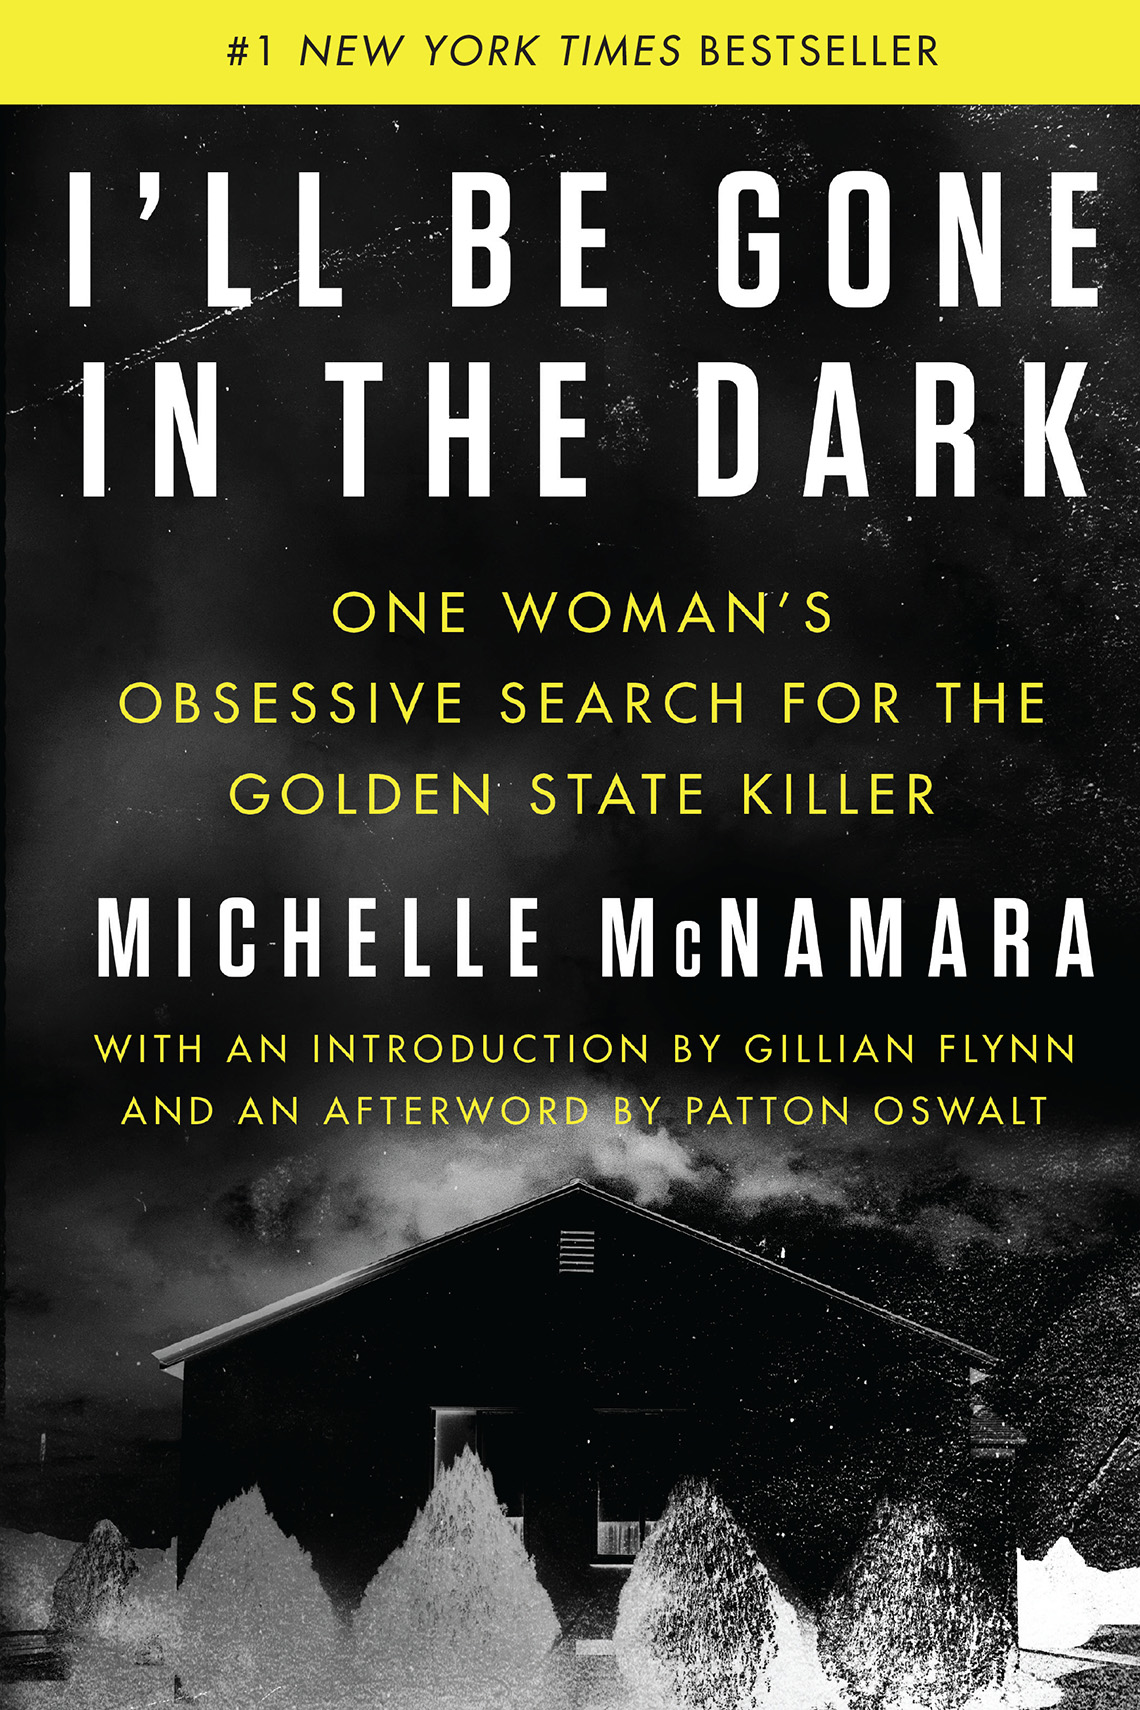 book cover of i'll be gone in the dark by michelle mcnamara